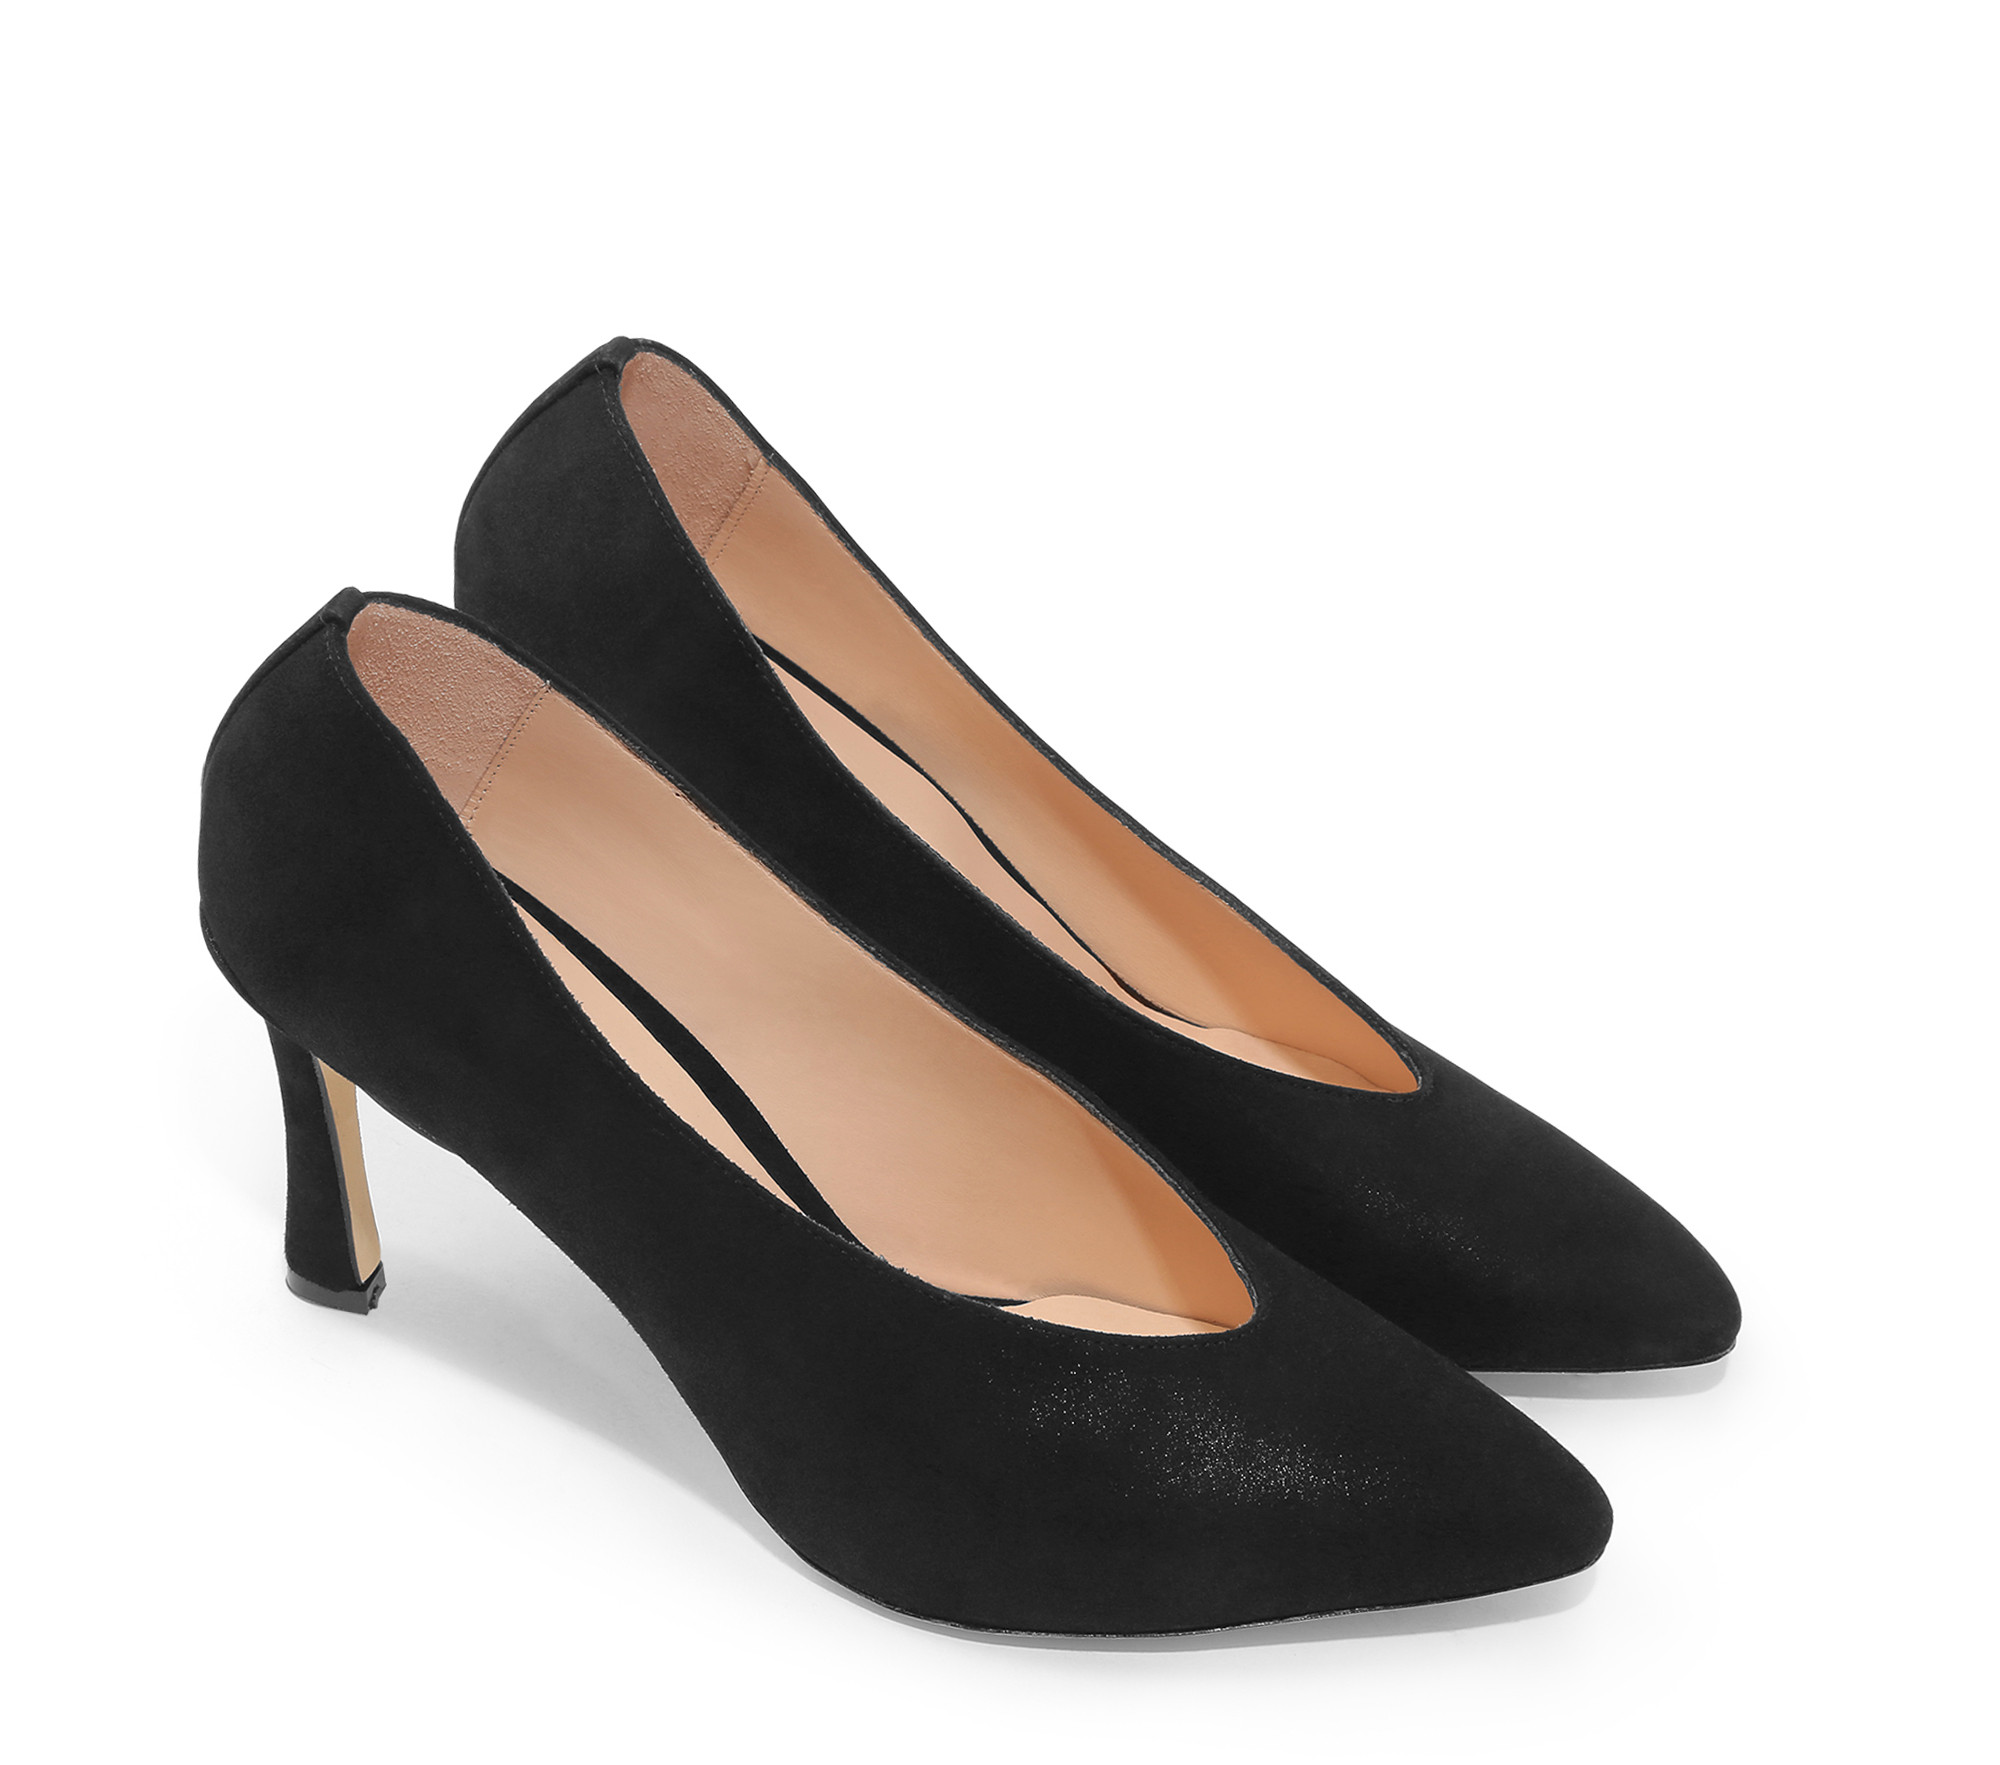 Gaven pumps